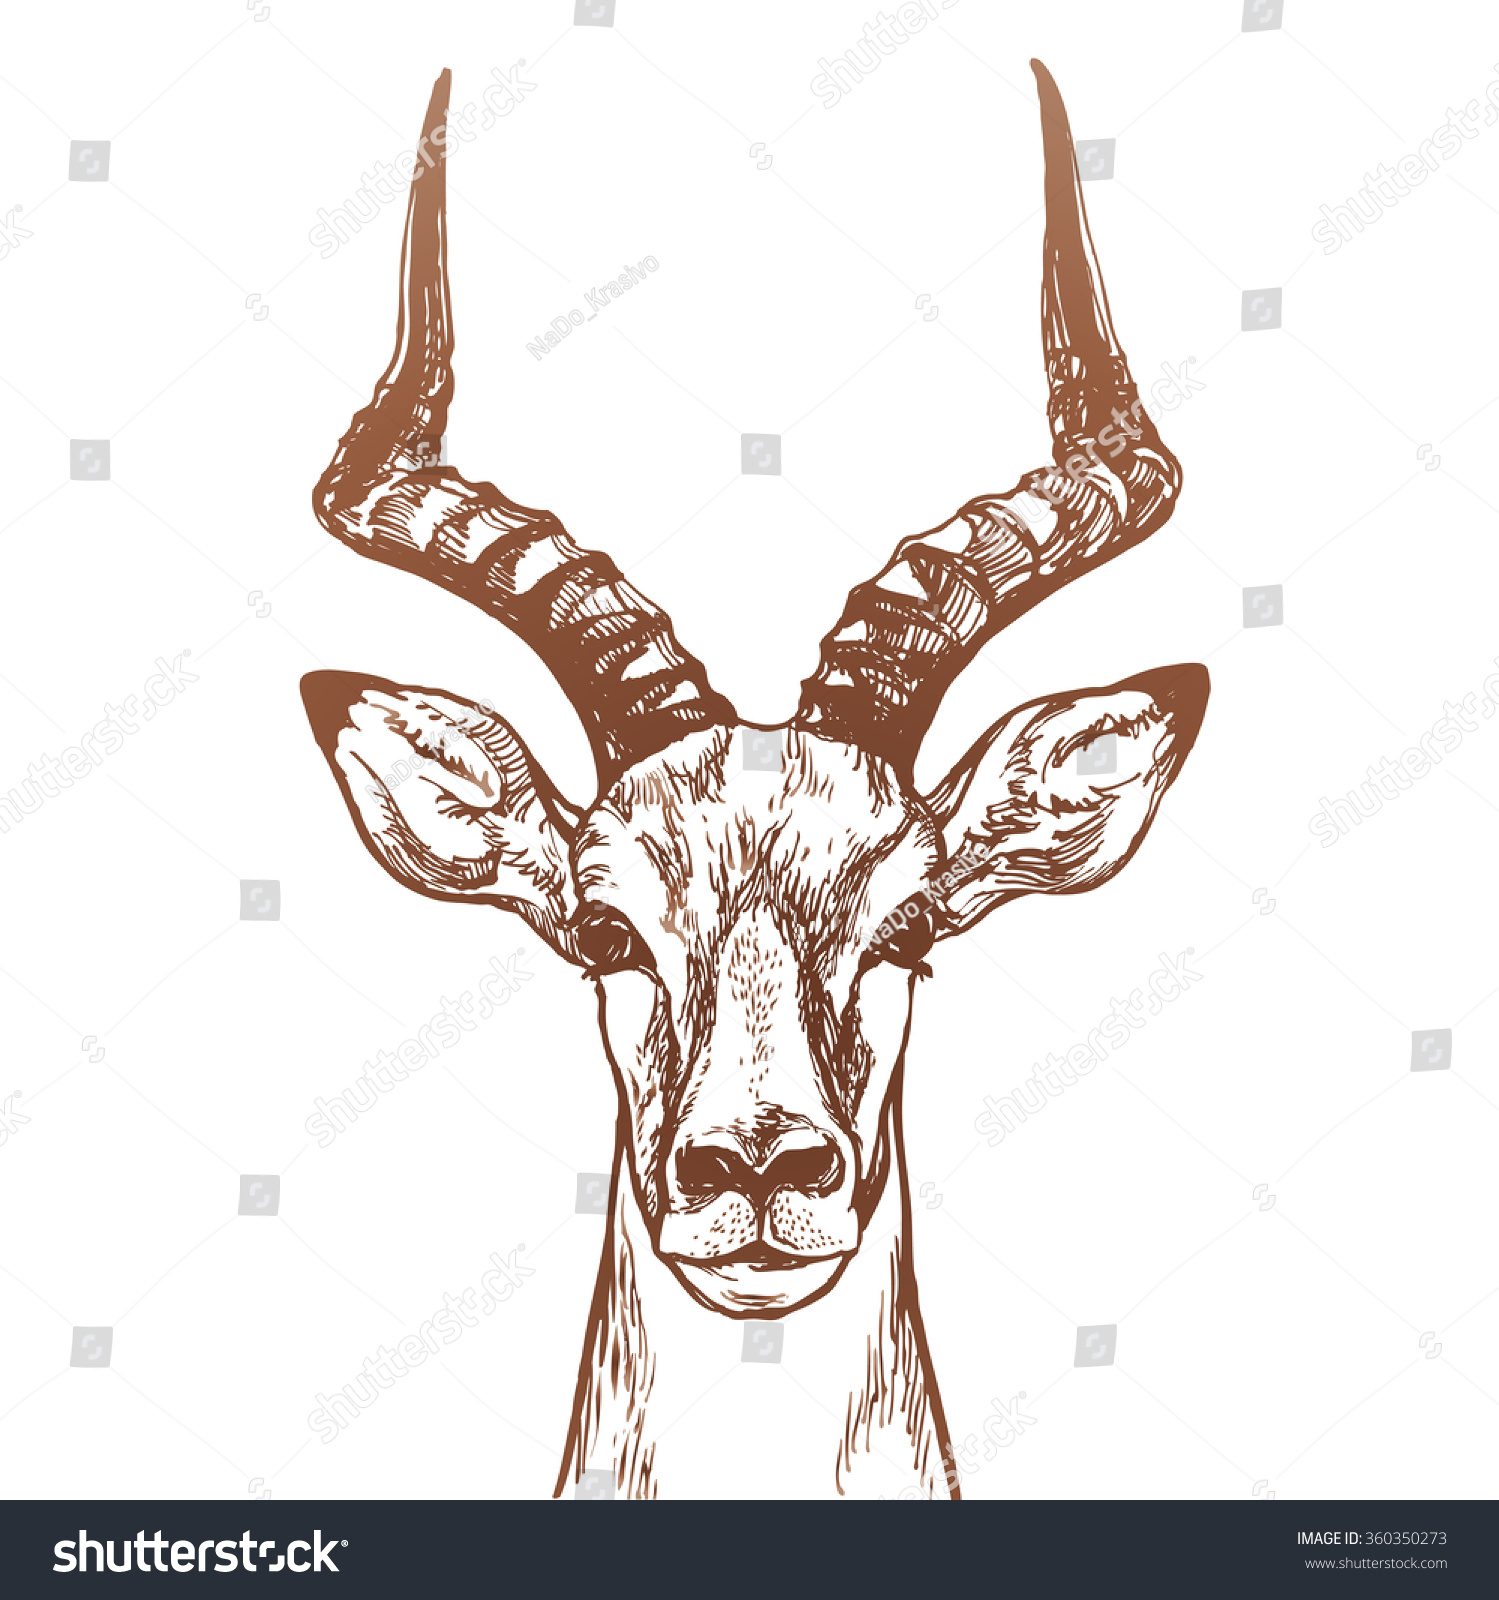 Gazelle head drawing - photo#13